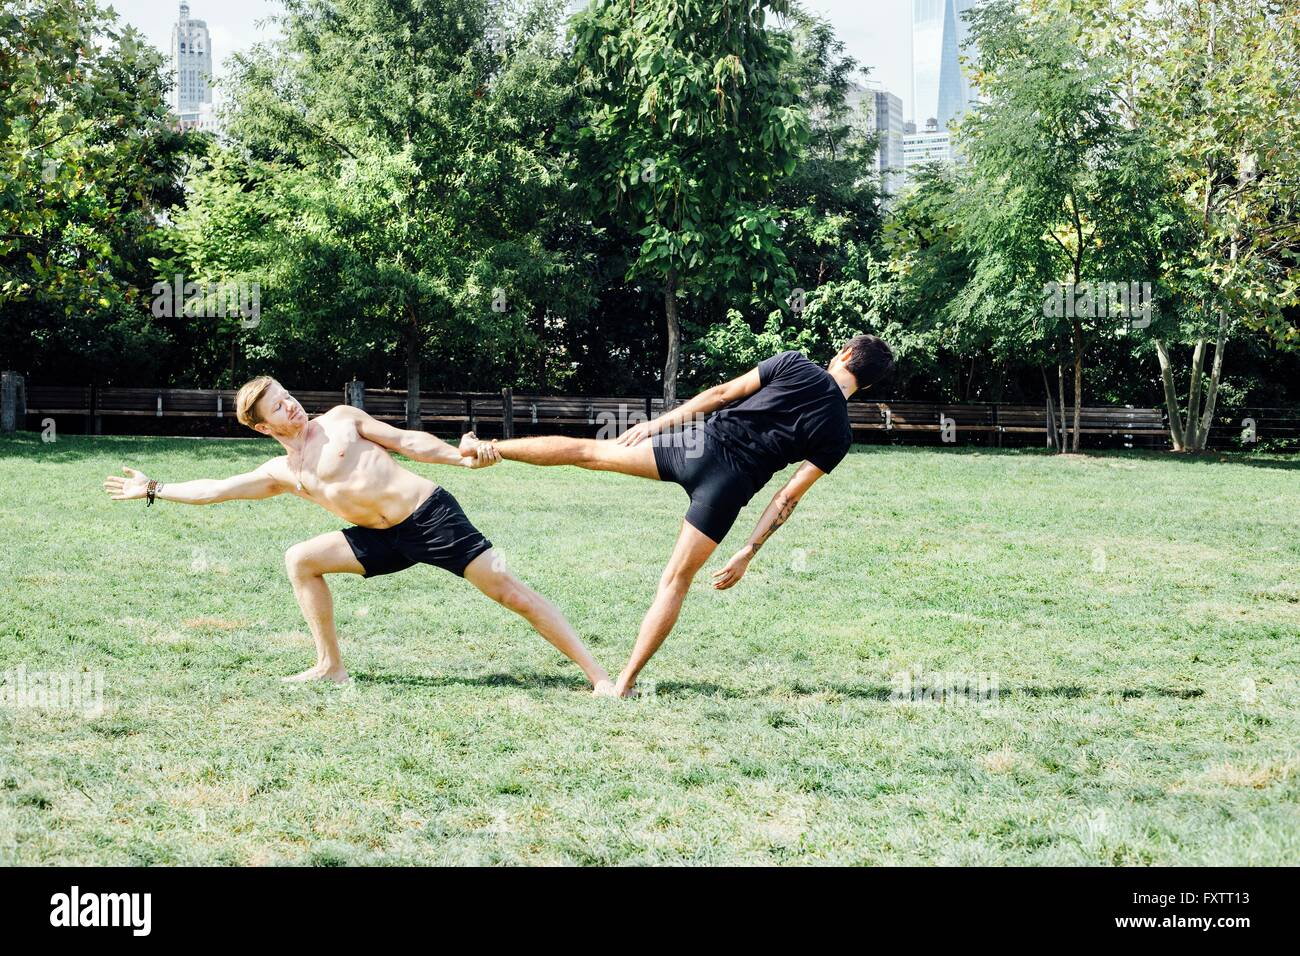 Two men leaning sideways in yoga foot hold position in park - Stock Image